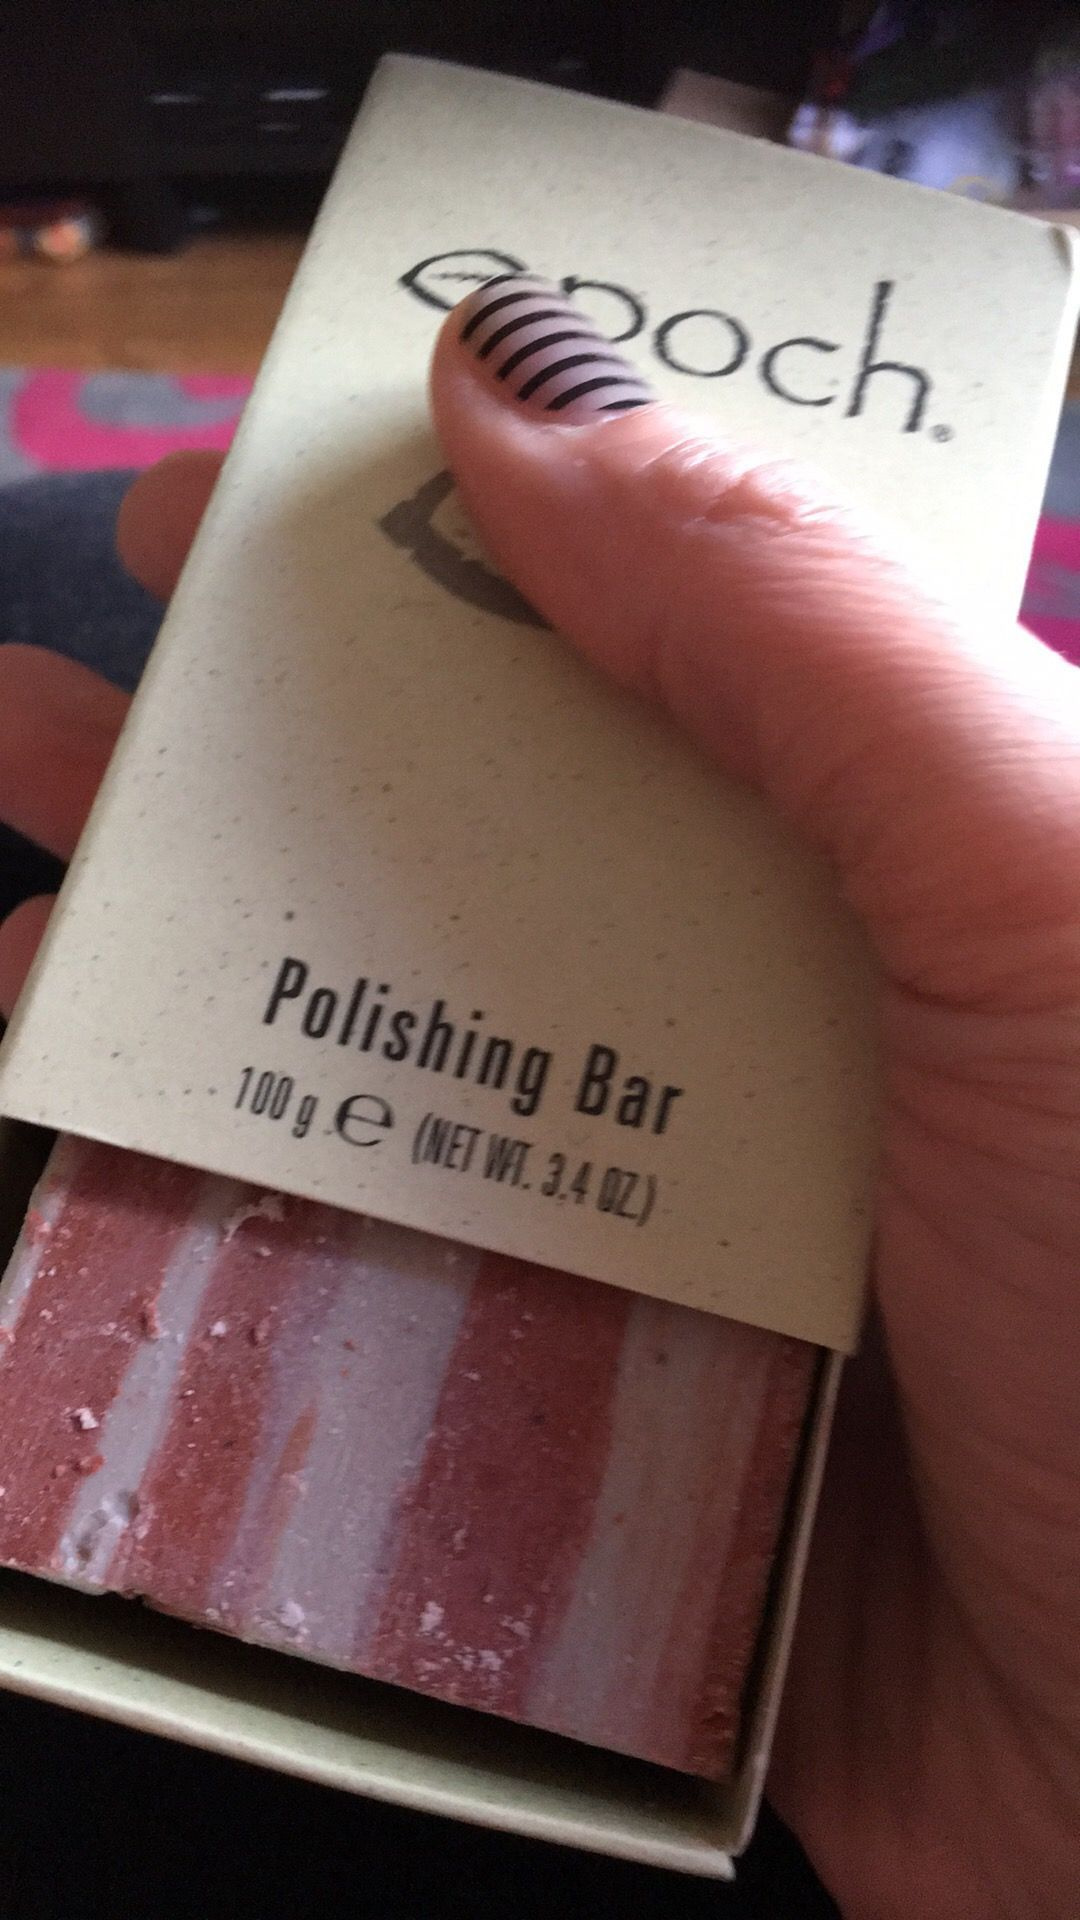 Polishing Bar! This amazing non soap bar contains glacial